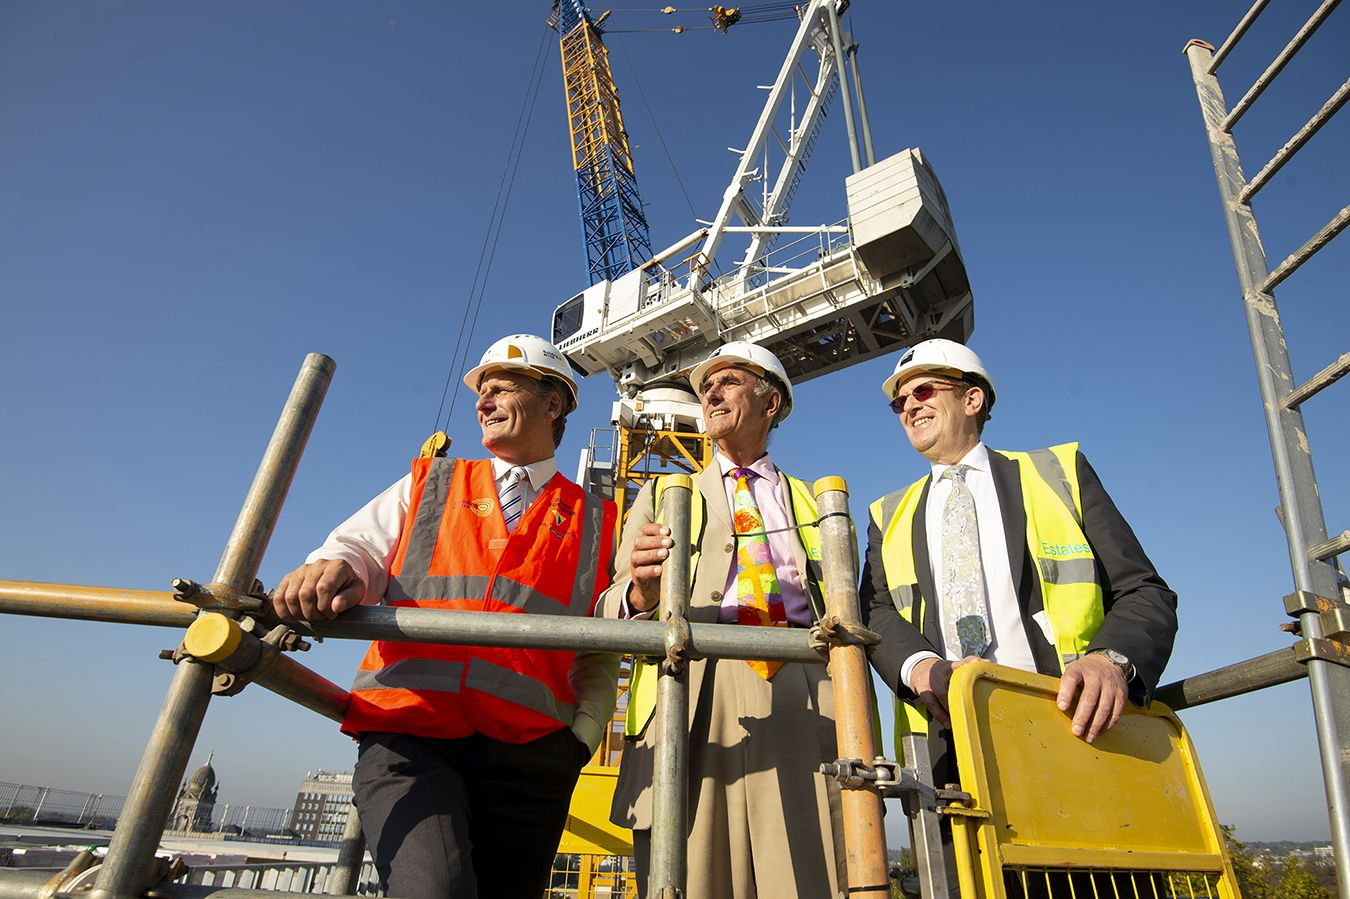 A photo of Steven Spier, David Edmonds and Roger Forsdyke at the top of a building in hard hats.